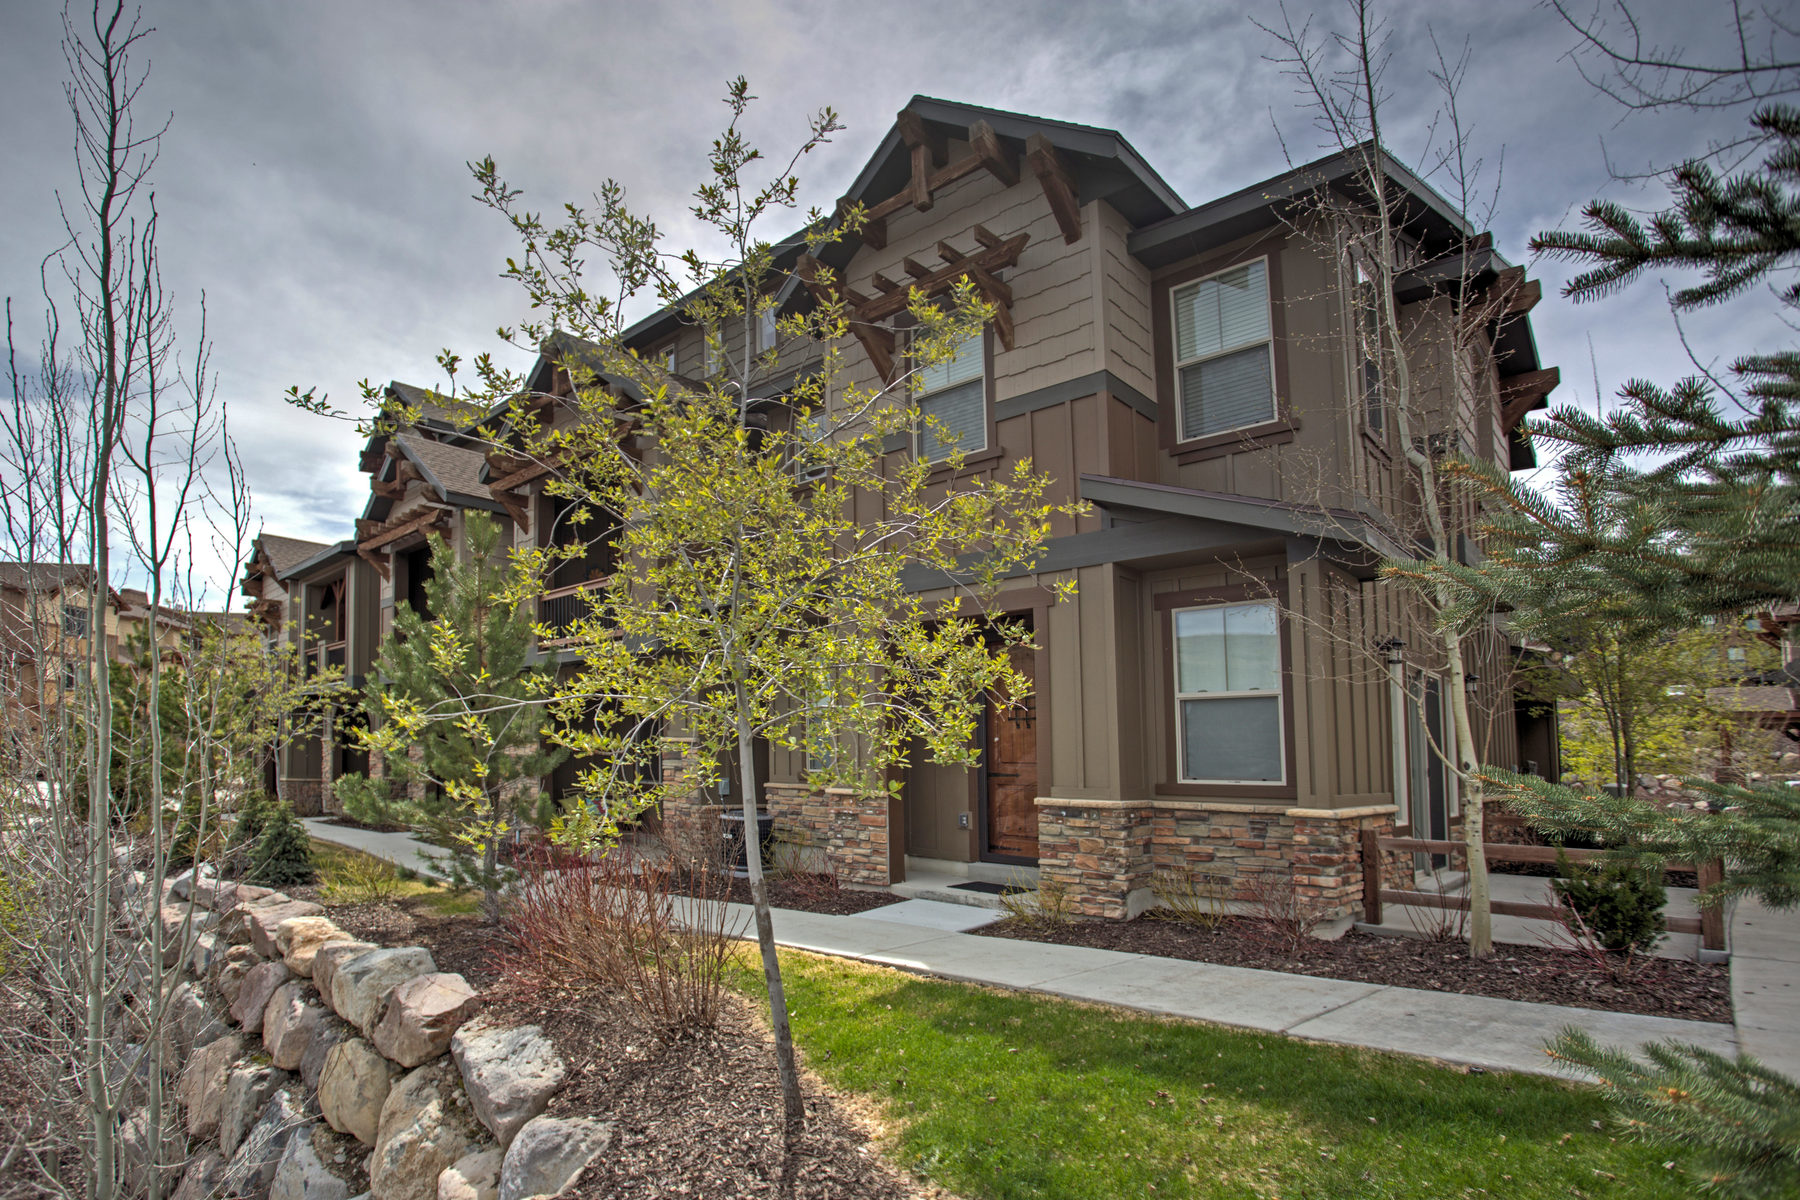 Villetta a schiera per Vendita alle ore Well Kept and Move-in Ready Townhouse 844 W Carving Edge Ct Heber City, Utah, 84032 Stati Uniti